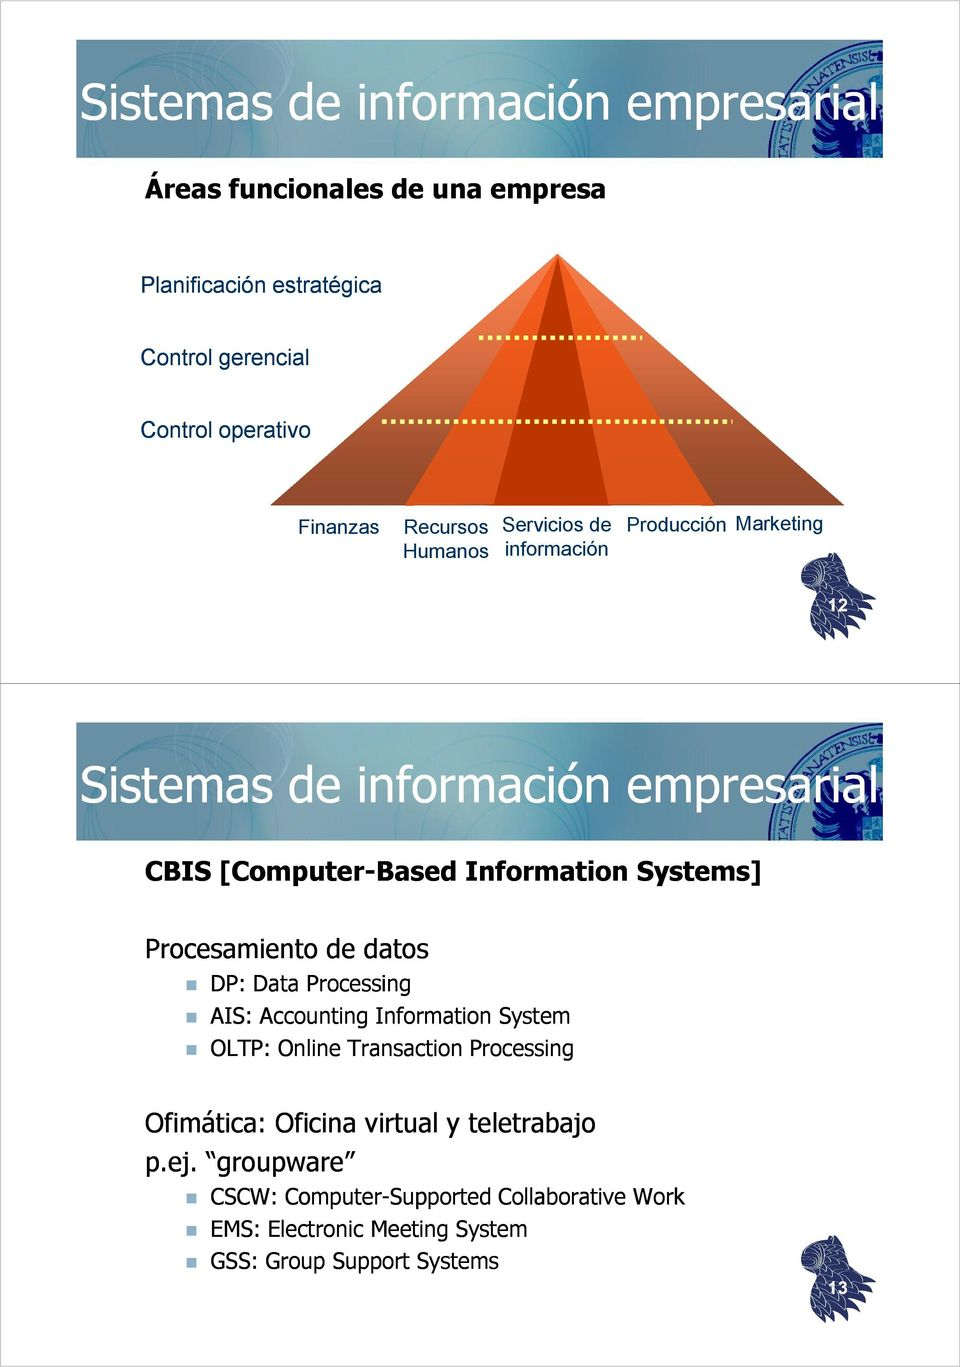 Systems] Procesamiento de datos DP: Data Processing AIS: Accounting Information System OLTP: Online Transaction Processing Ofimática: